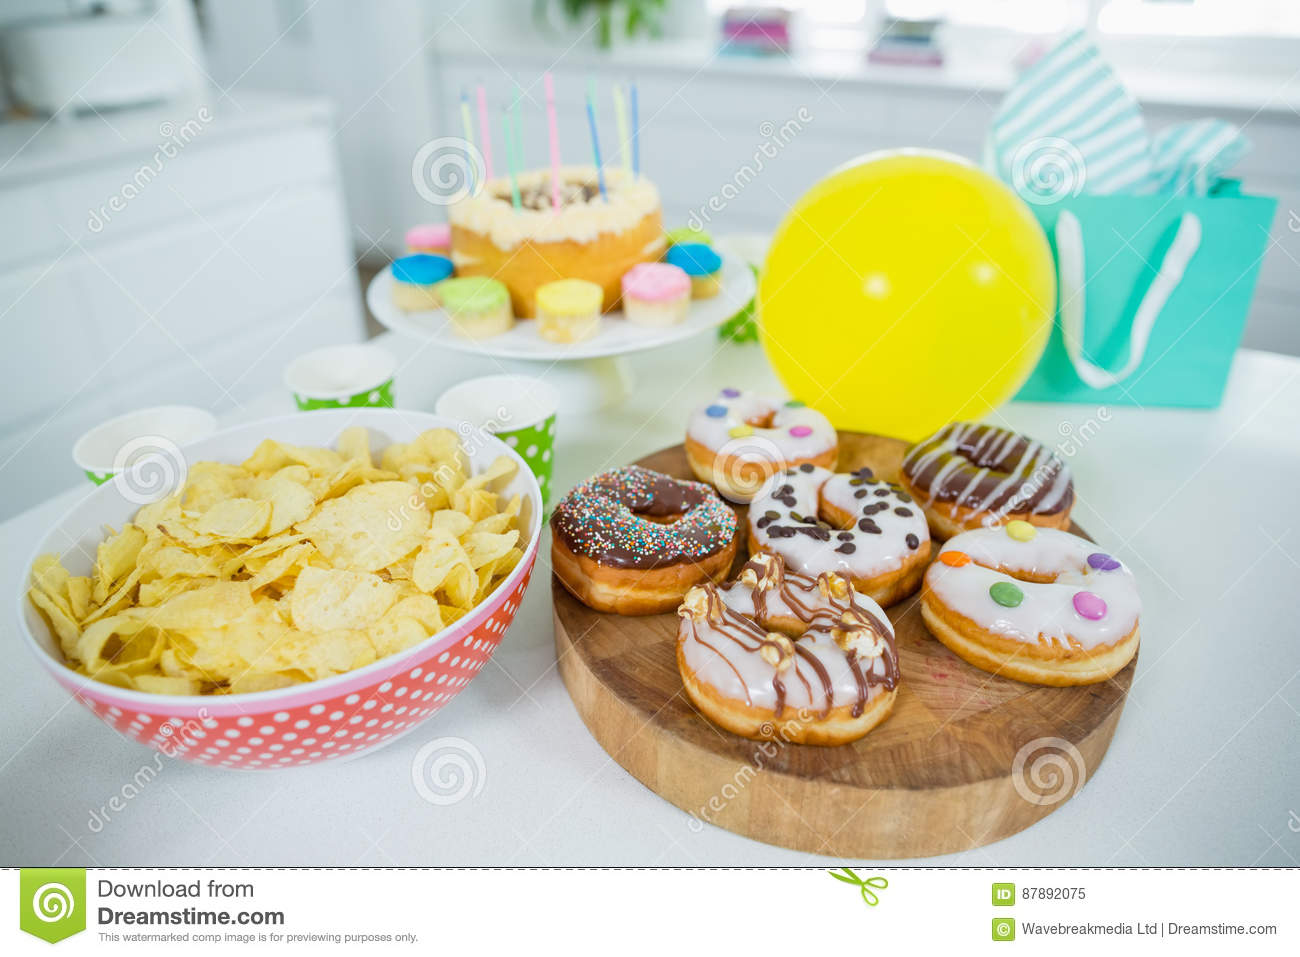 Stupendous Doughnuts Potato Chip Birthday Cake And Balloons On Table Stock Personalised Birthday Cards Paralily Jamesorg